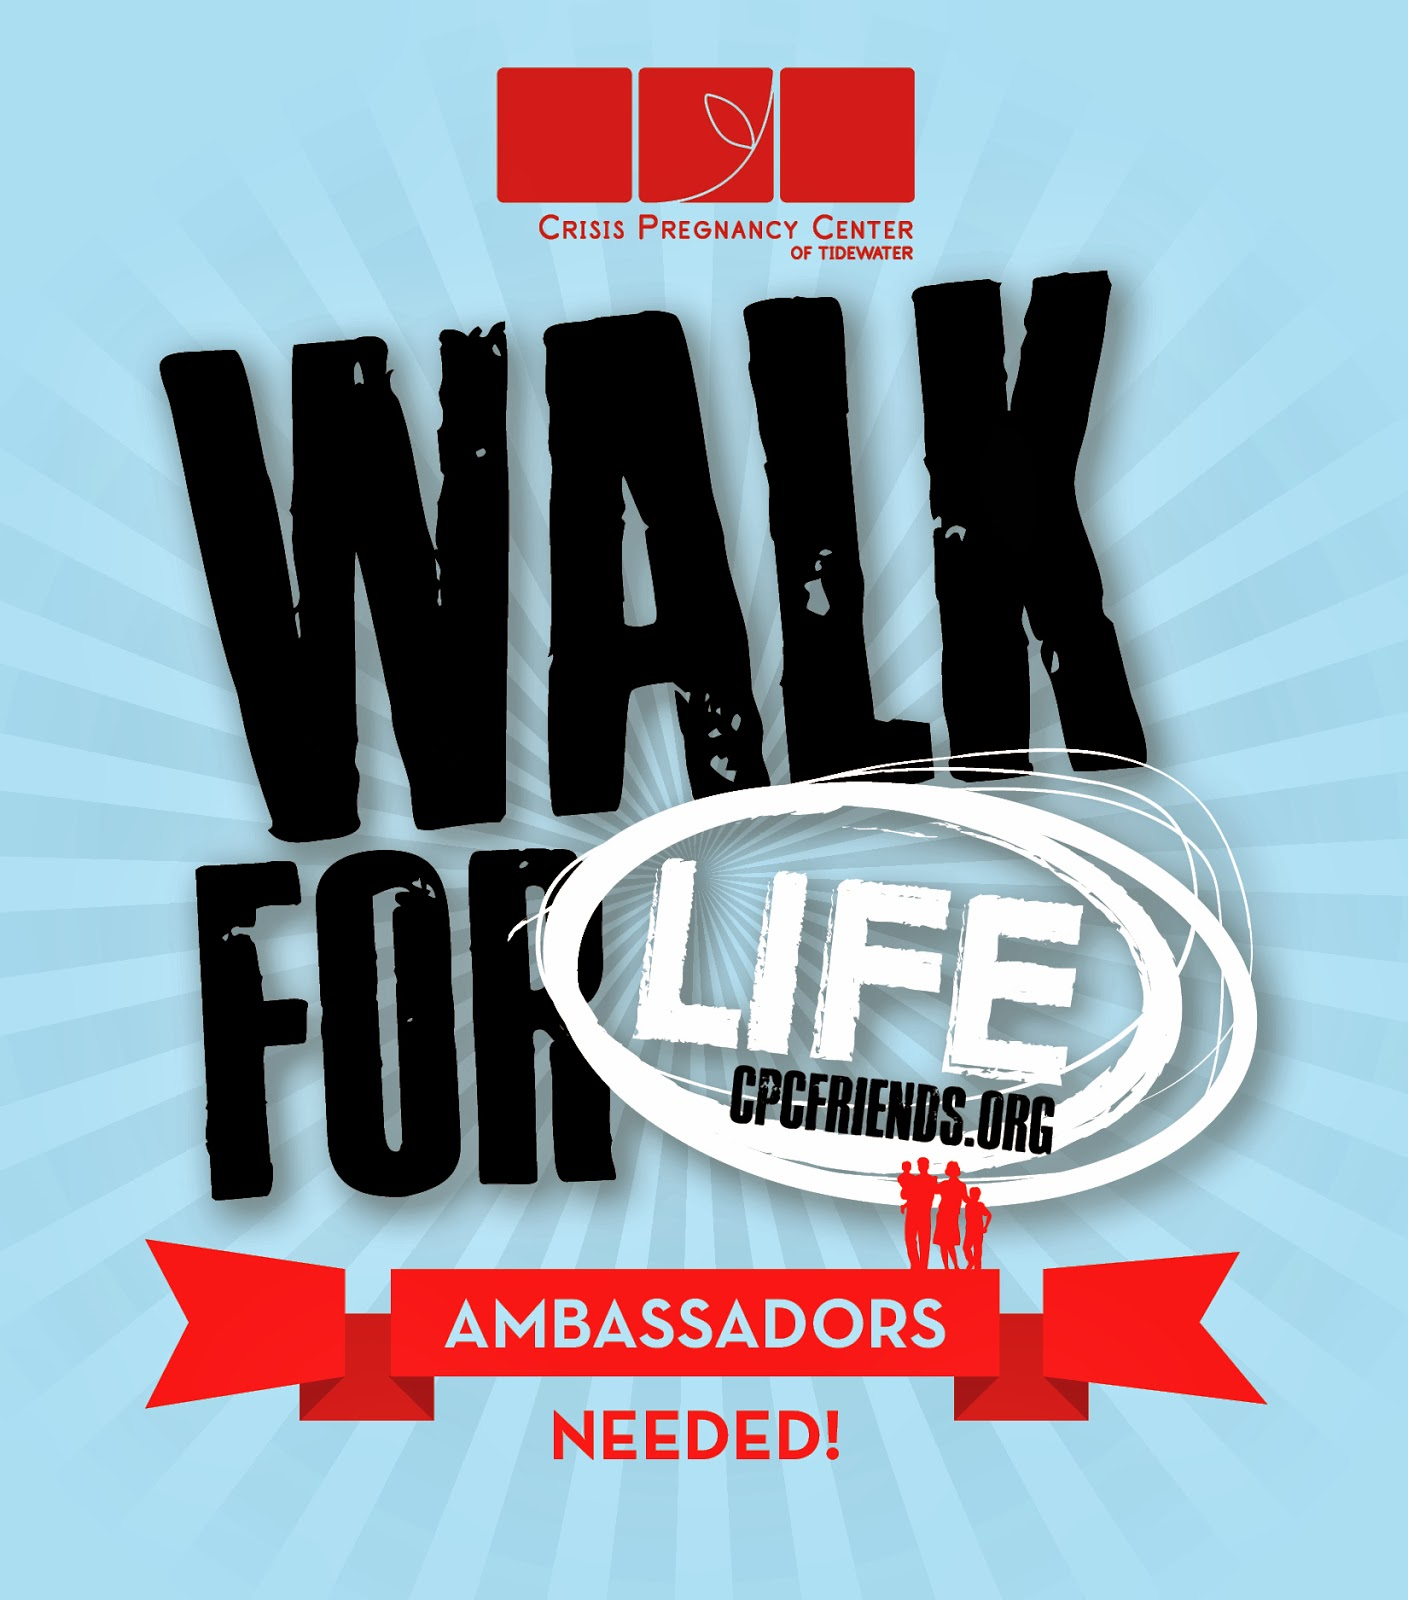 CPC's Walk for Life: Ambassadors Needed!